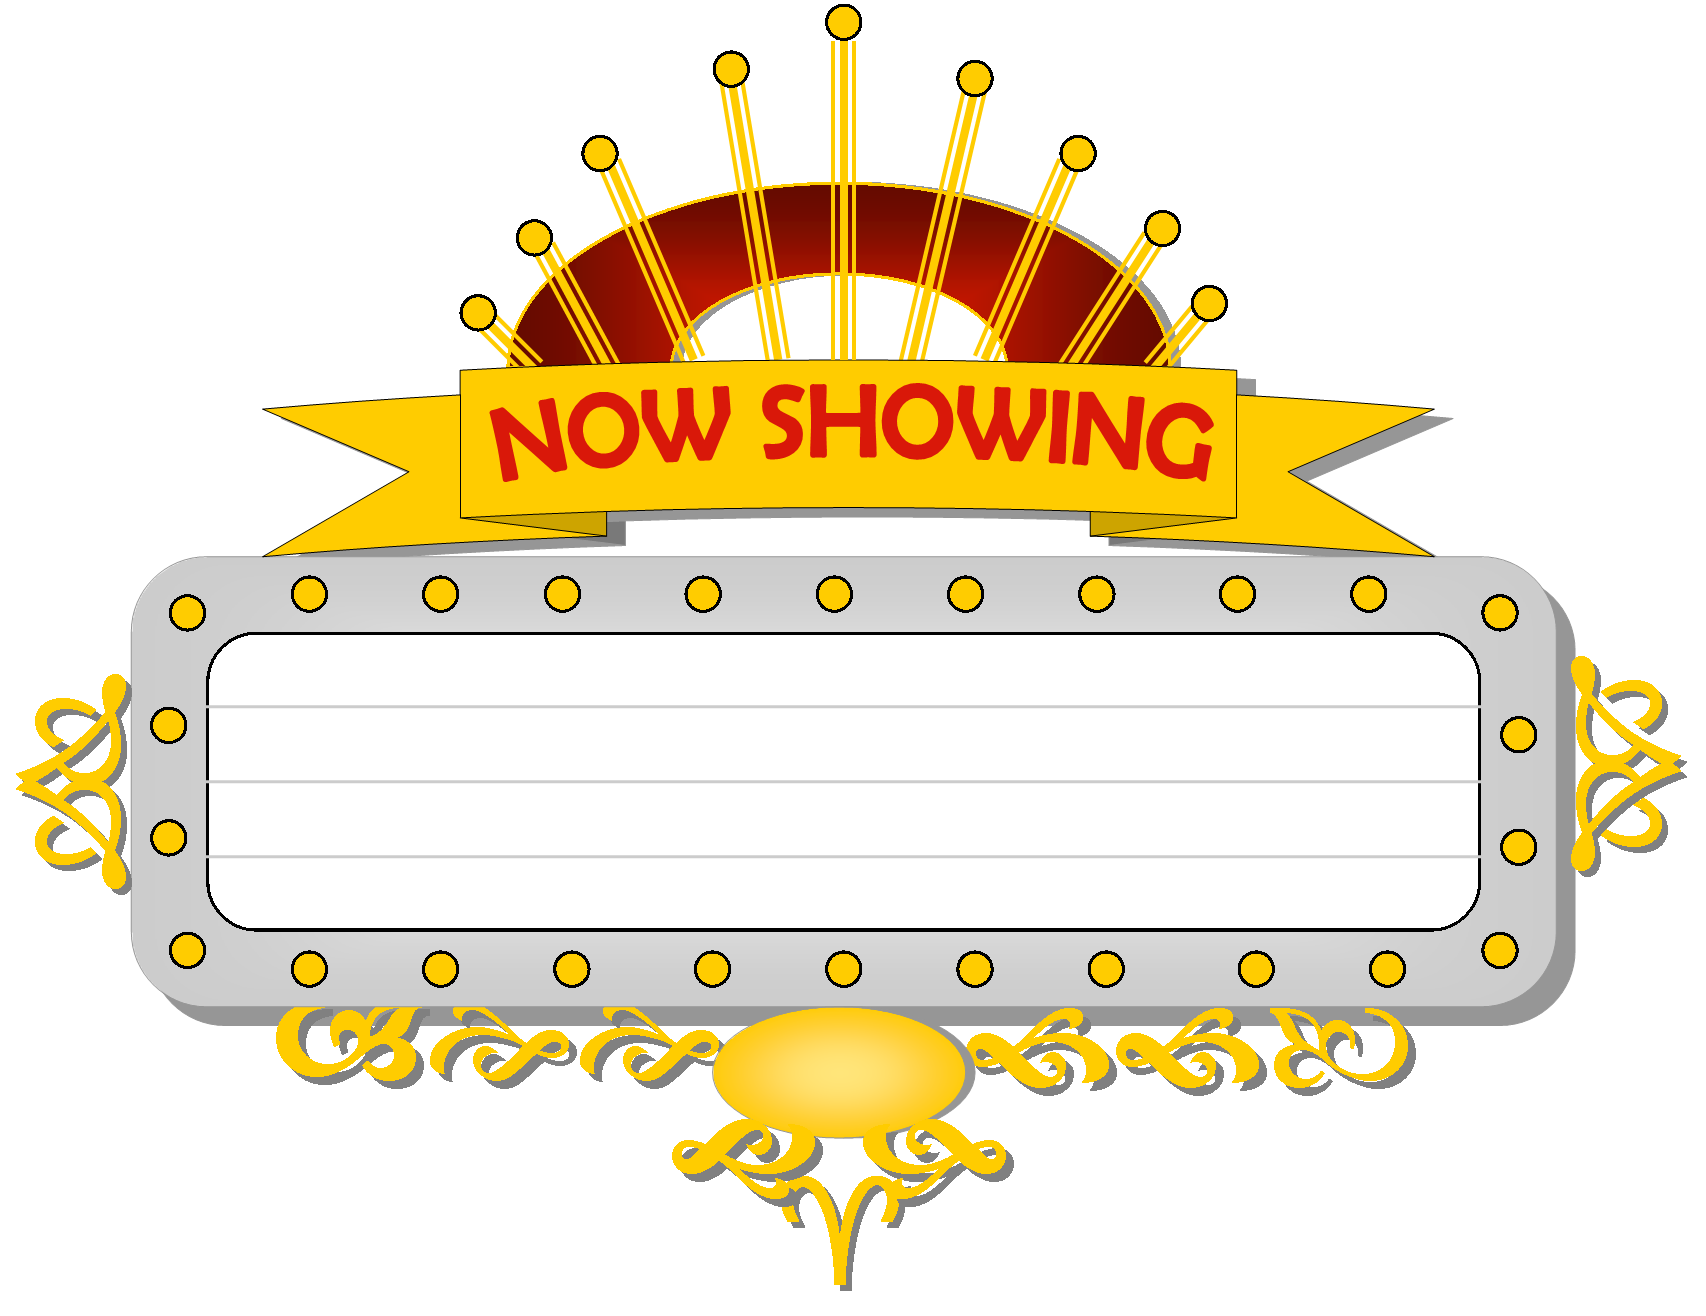 svg black and white Marquee hr free images. Arcade clipart broadway ticket.